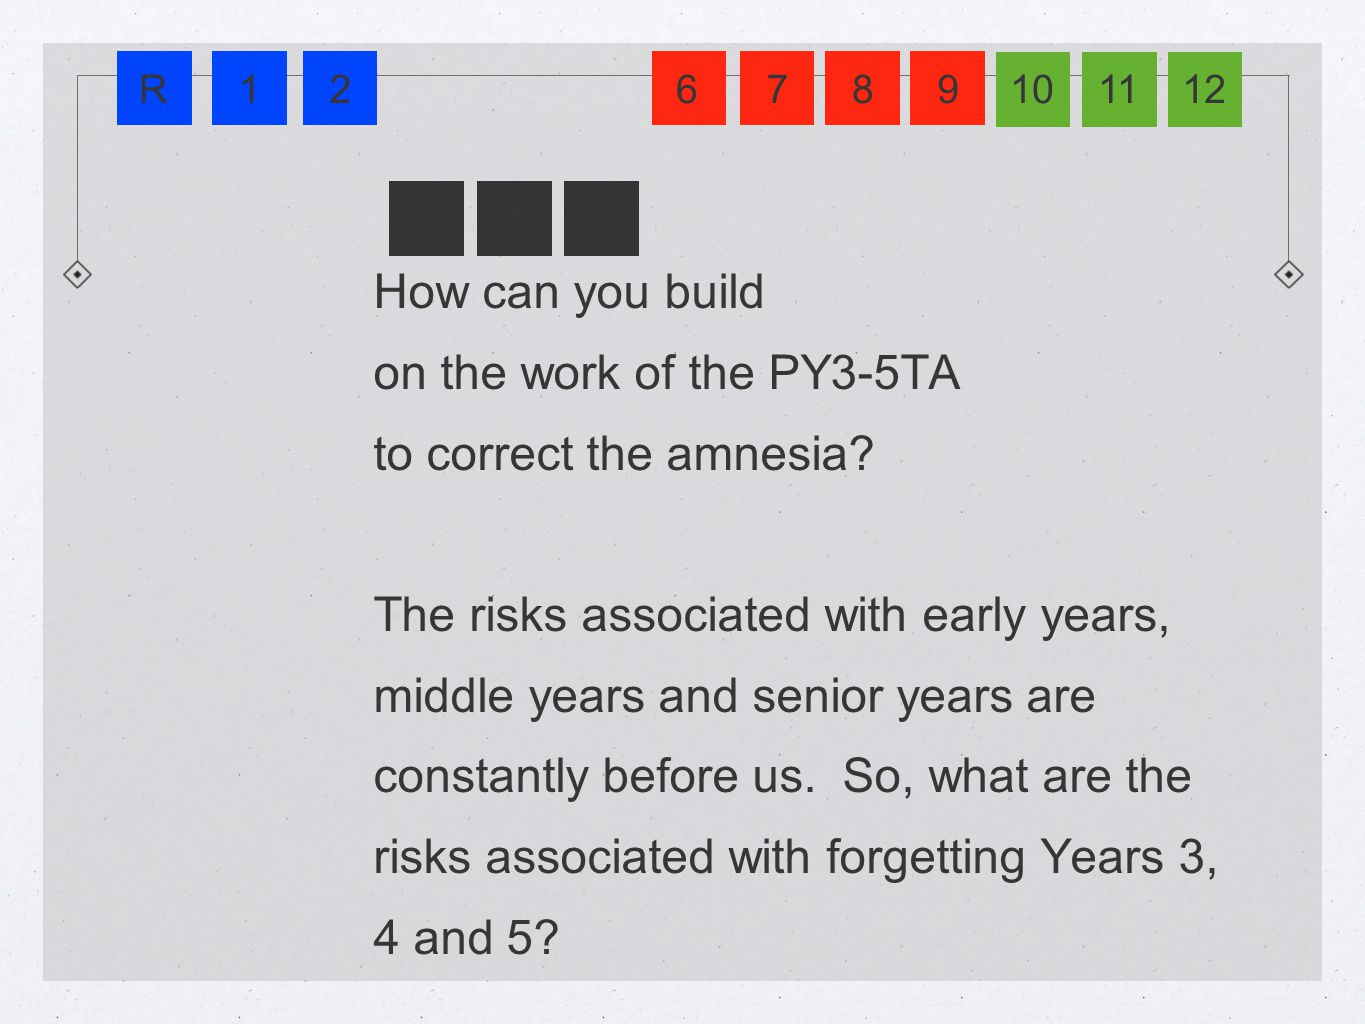 How can you build on the work of the PY3-5TA to correct the amnesia.